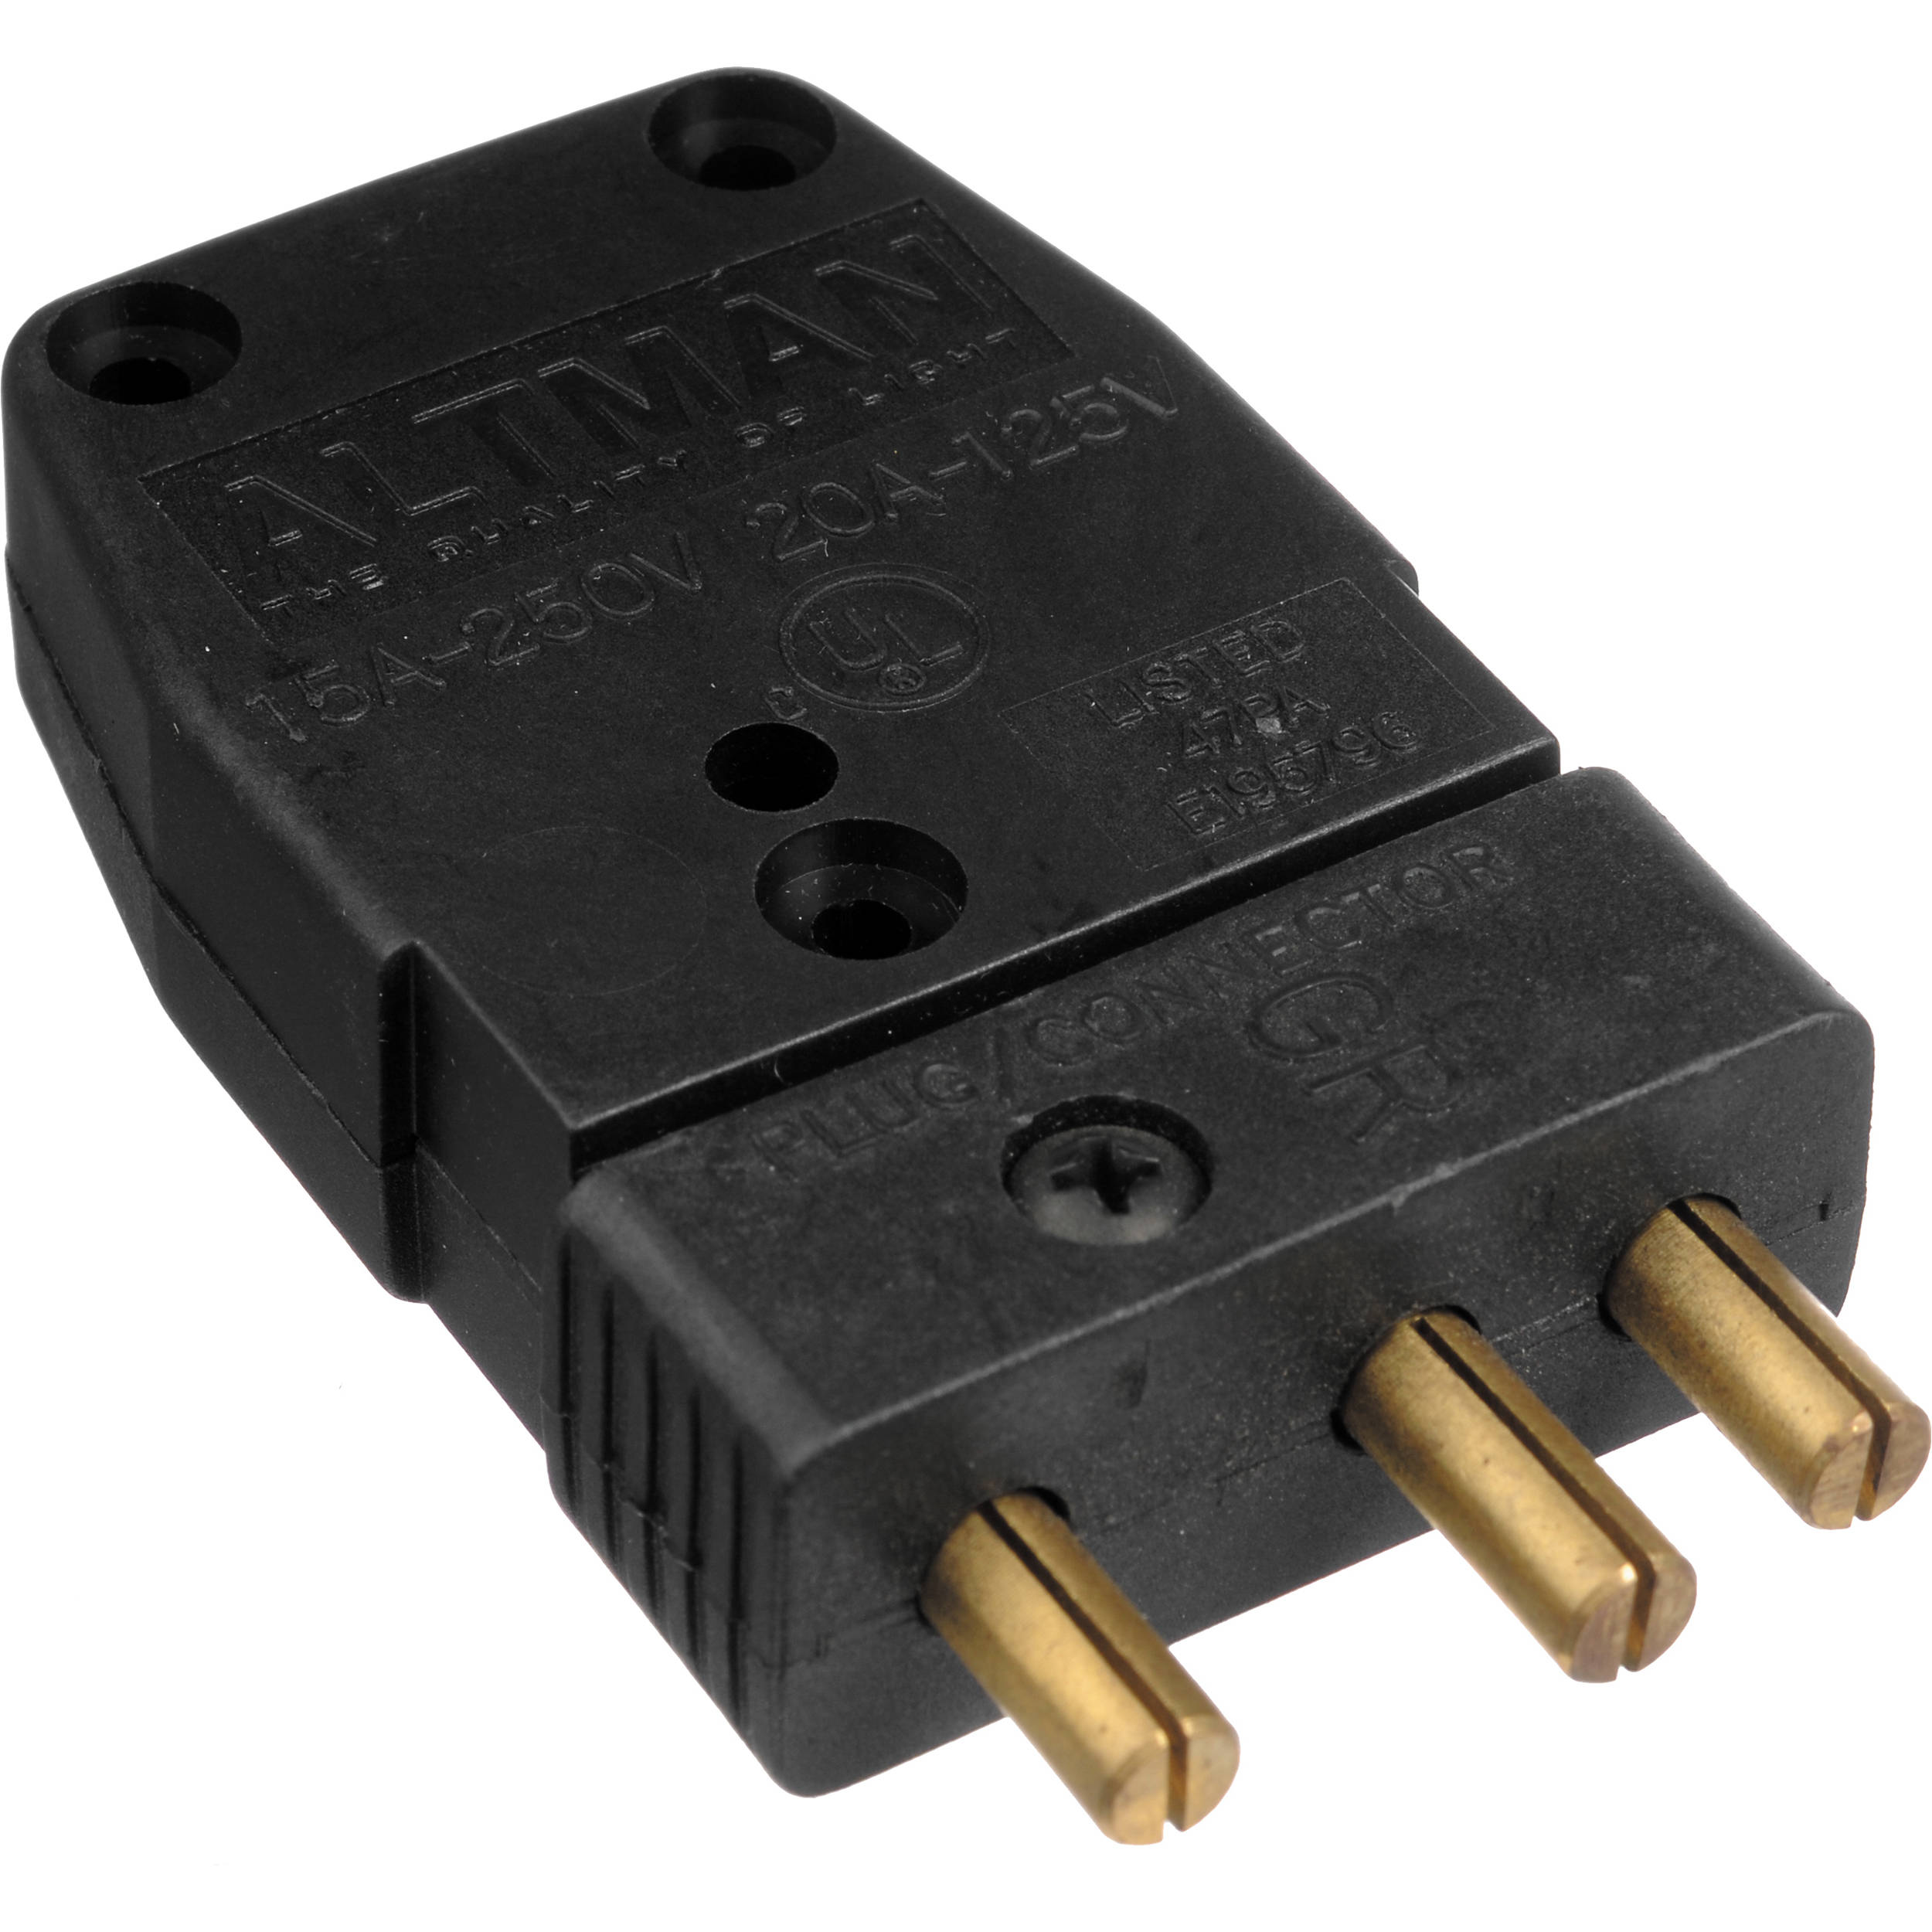 Altman Male Stage Pin Connector - 20 Amps 52-138GM B&H Photo